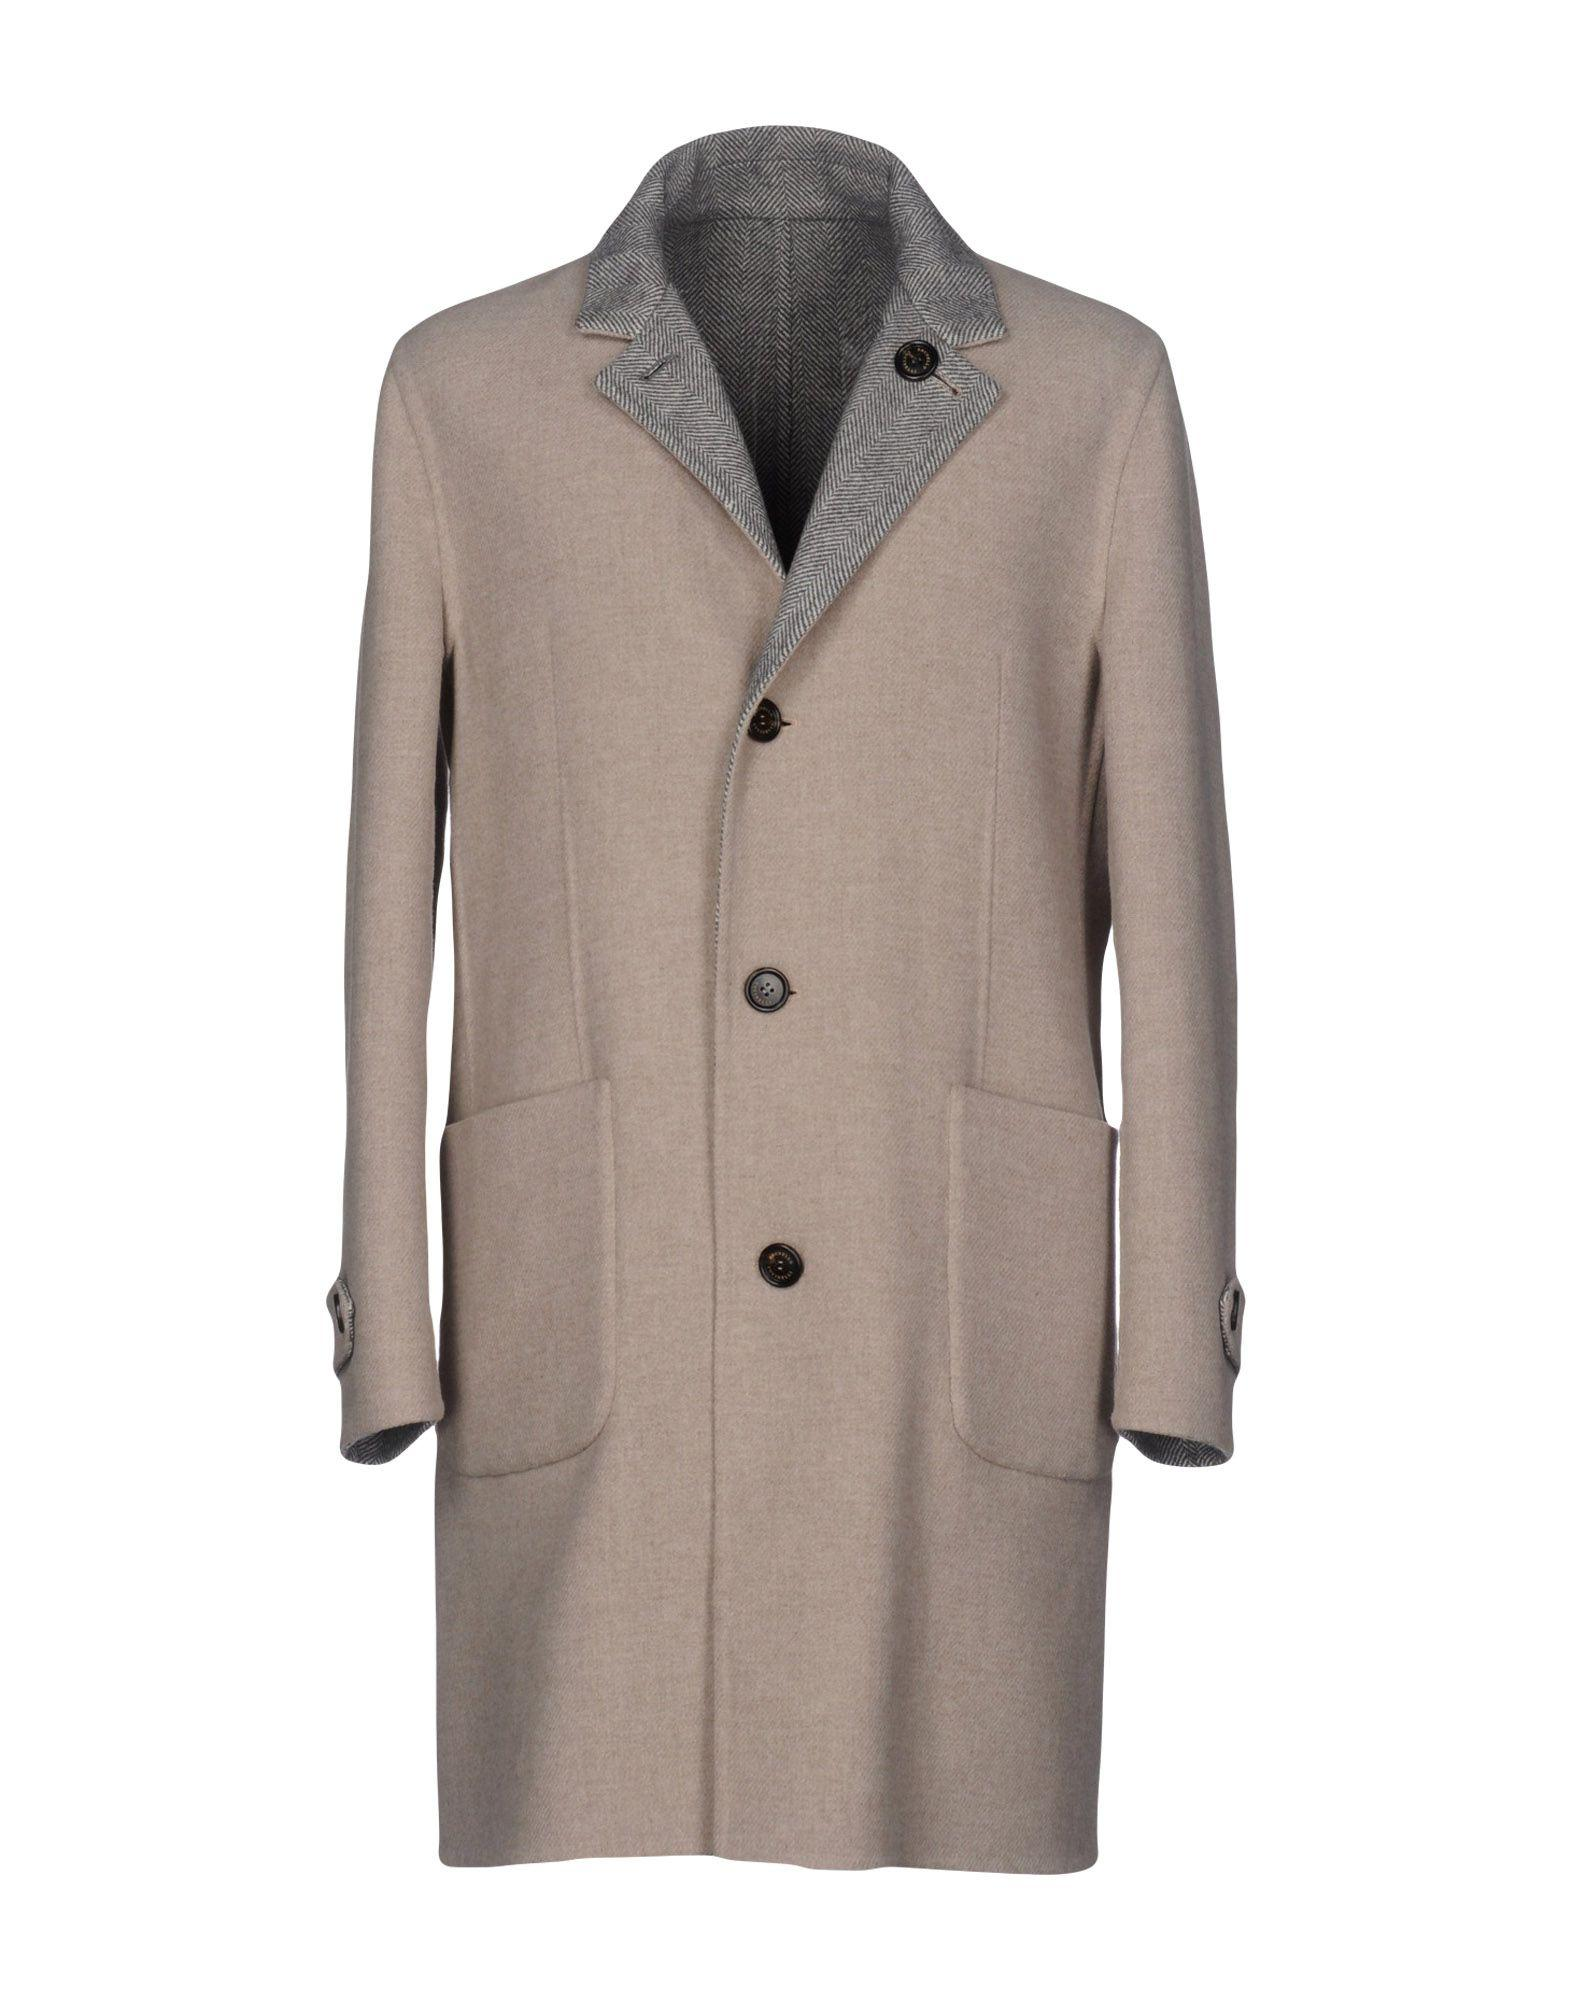 Brunello Cucinelli Coat In Beige